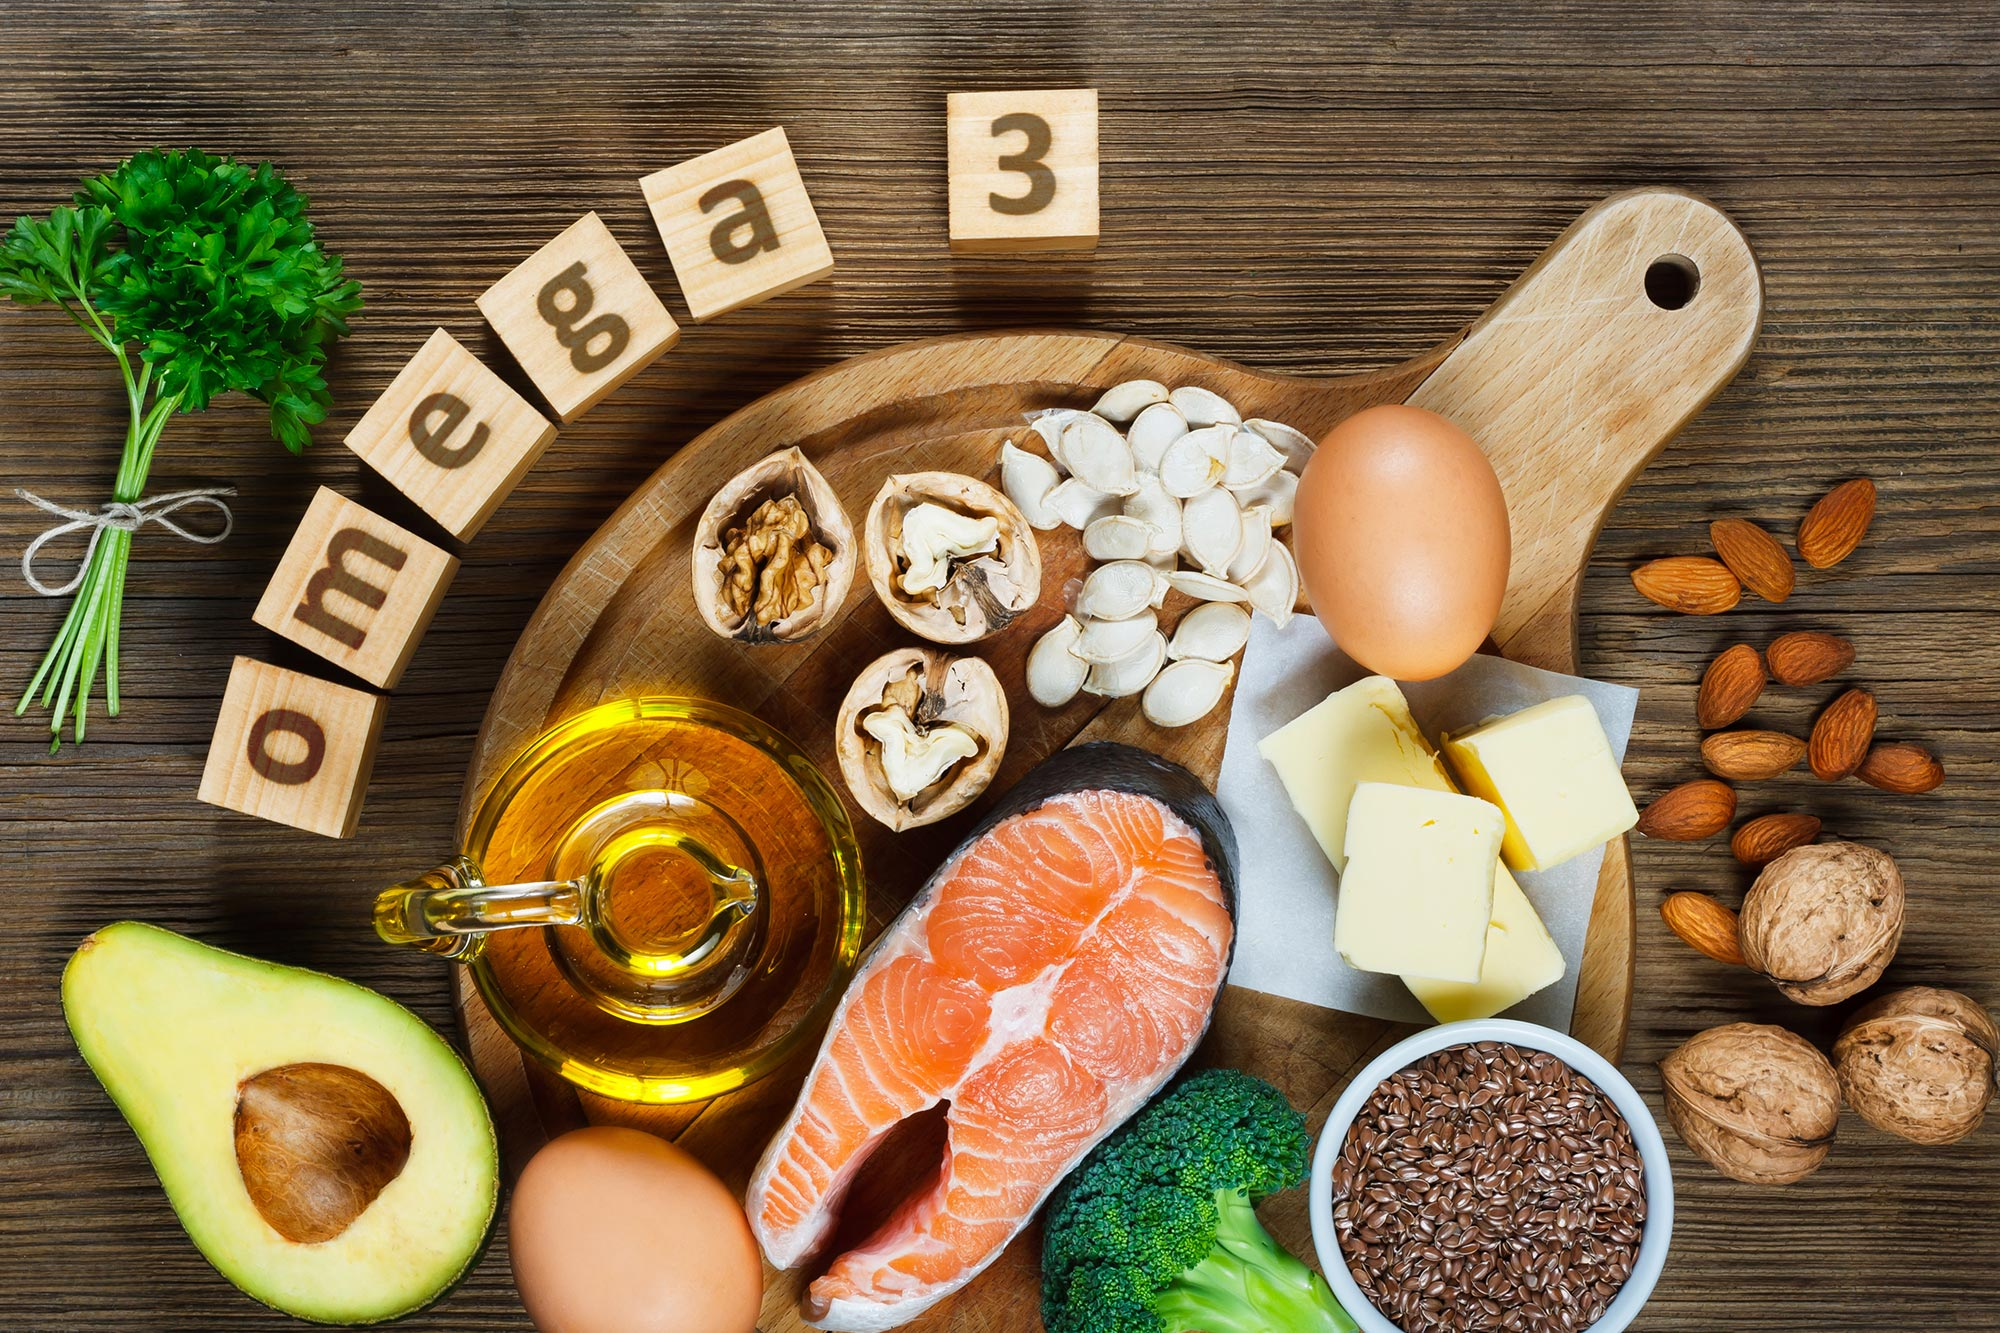 New Research Finds Consuming Omega-3 Fatty Acids Could Prevent Asthma